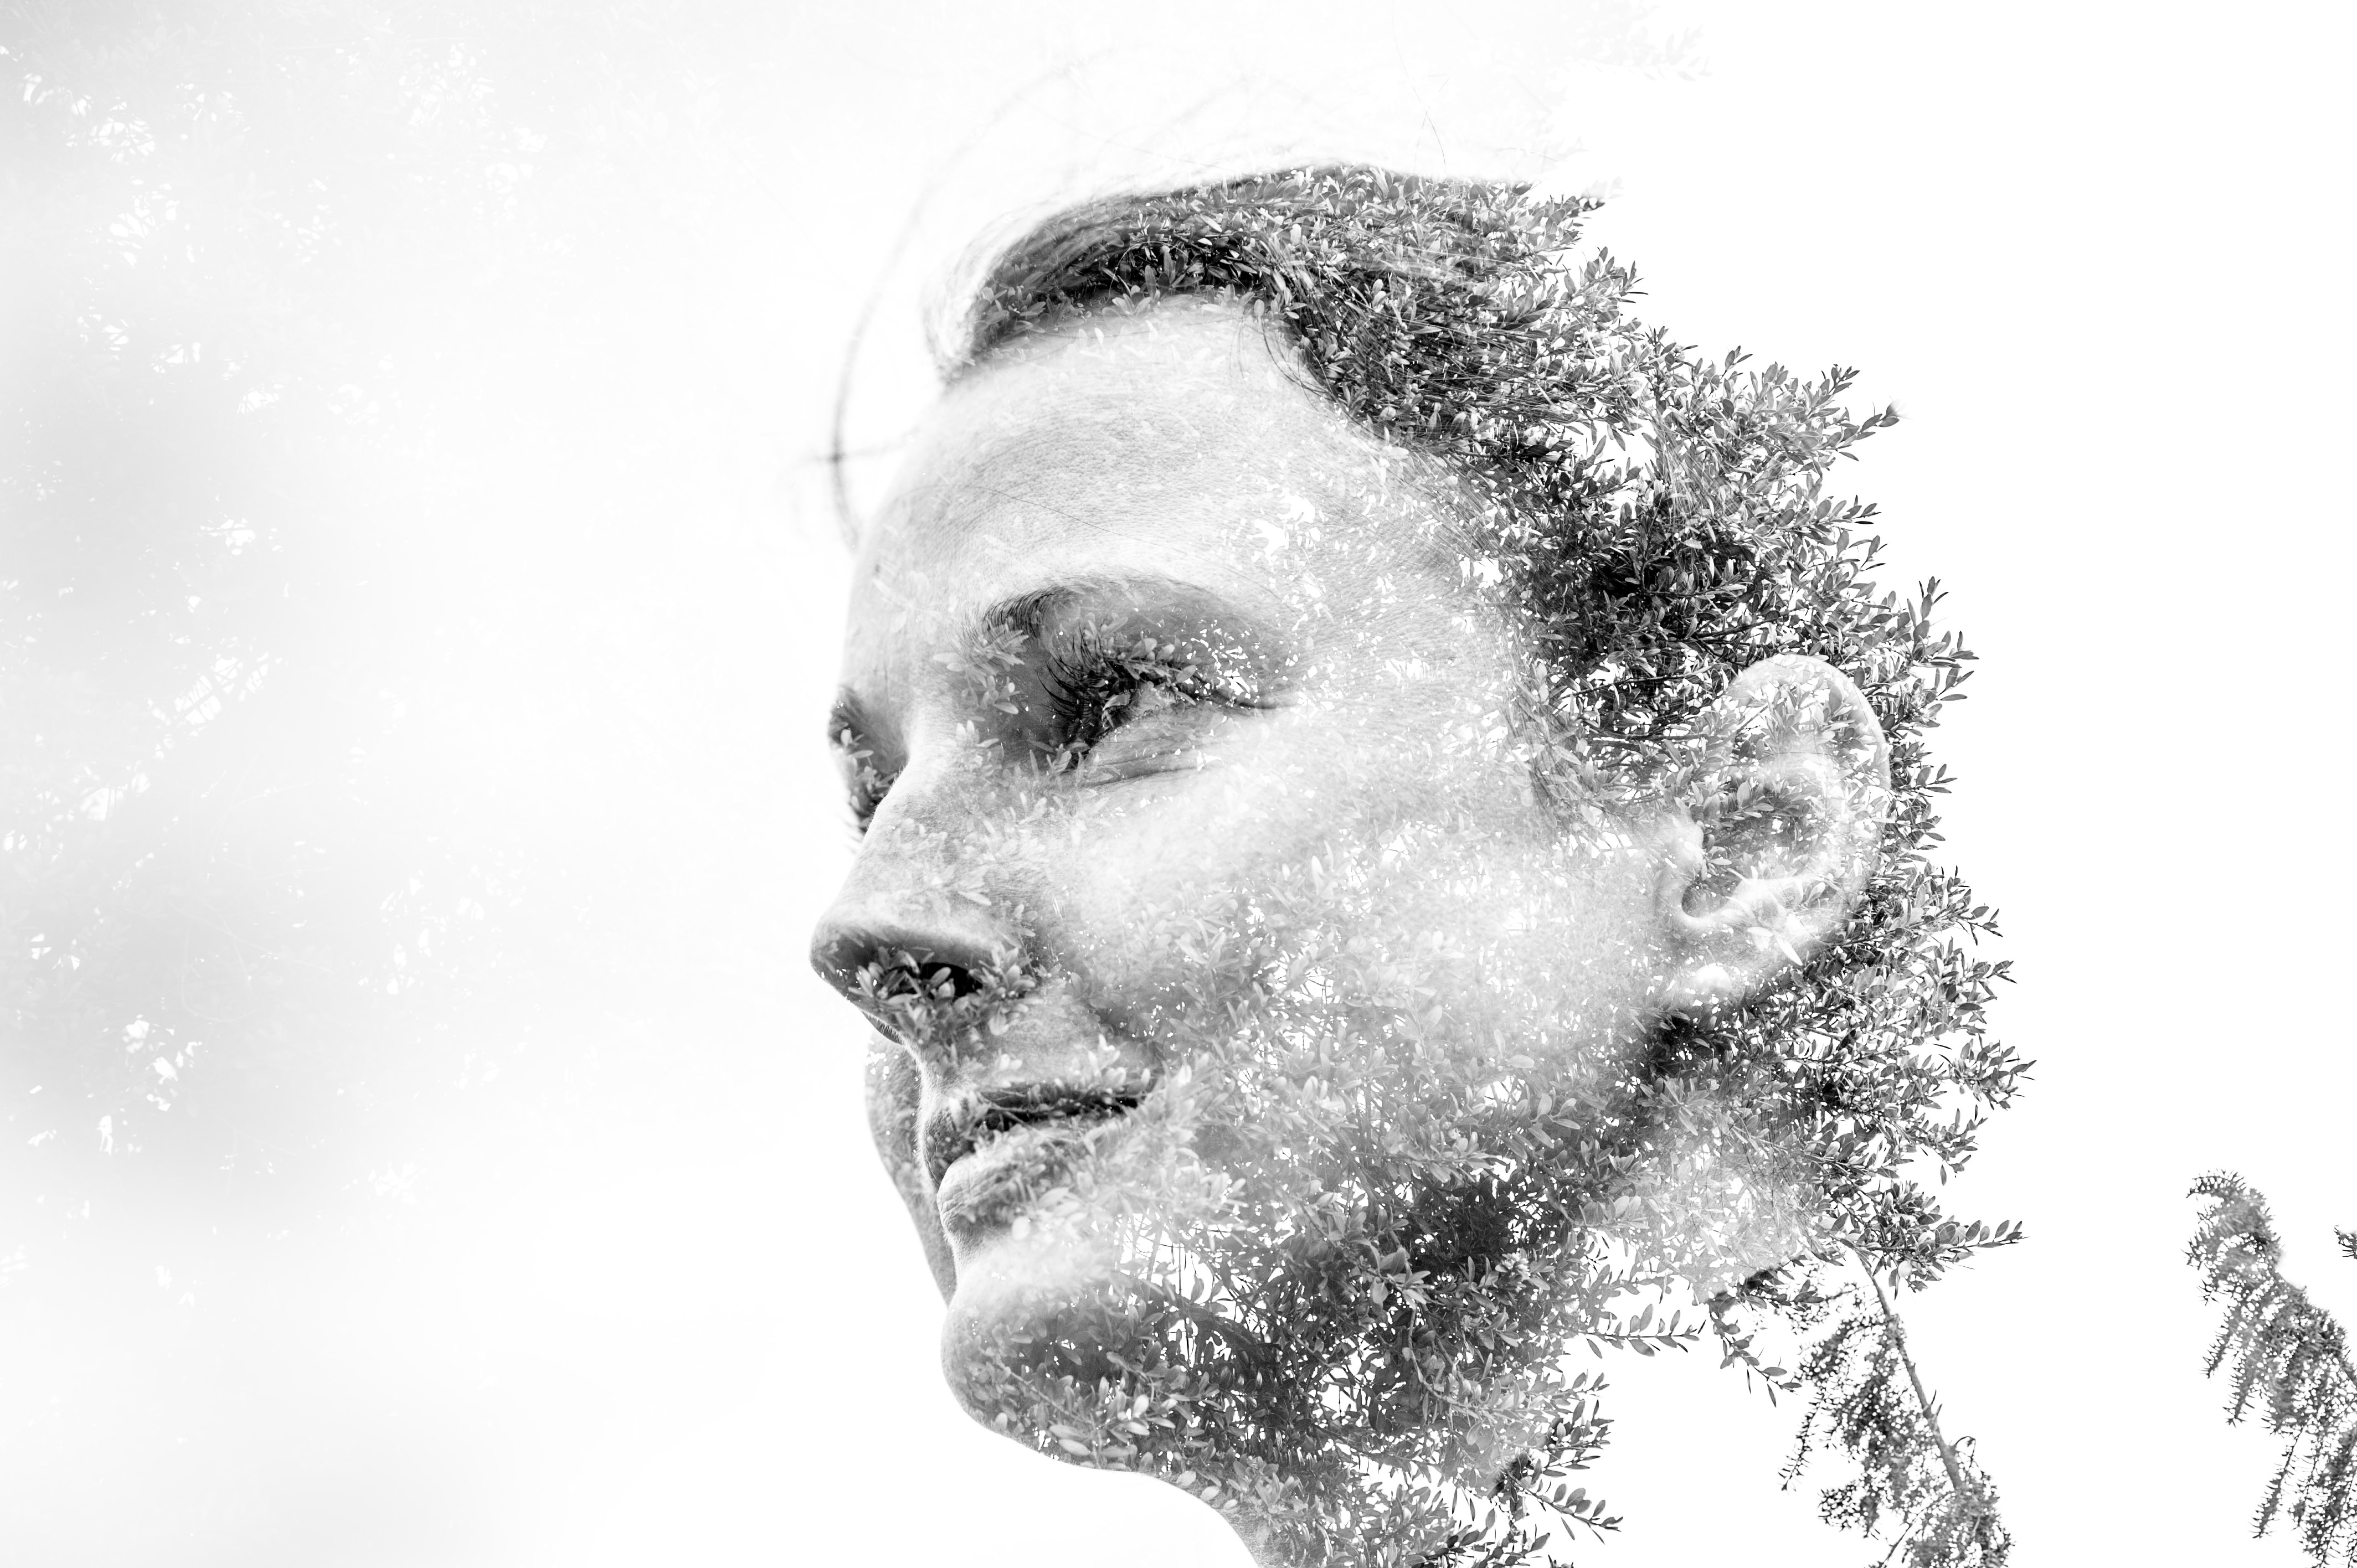 Double exposure of Agata